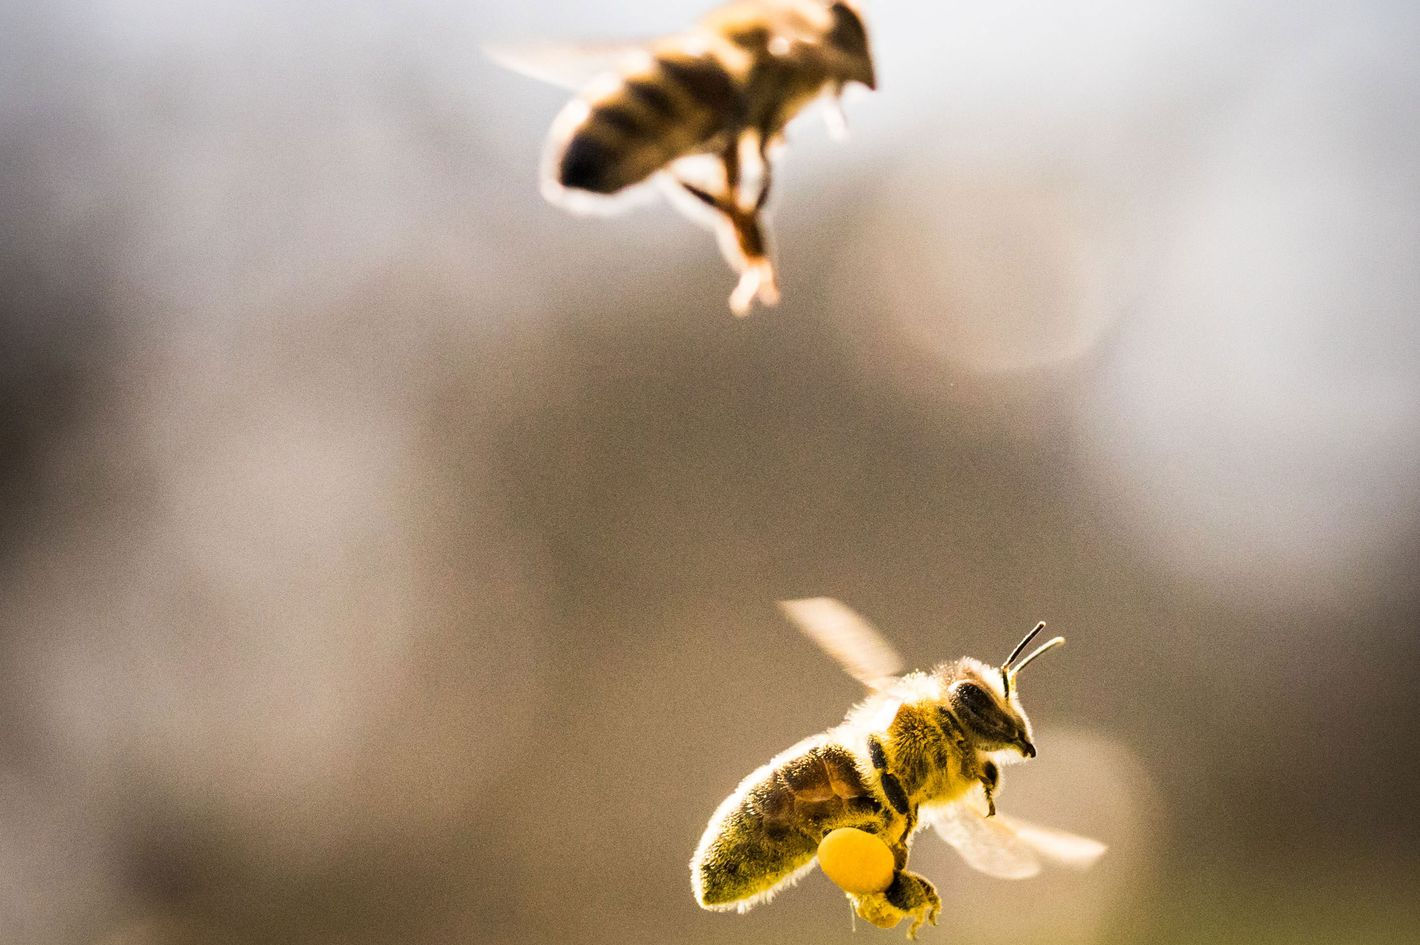 Bee Pollen Does It Have Any Benefits And How To Take It